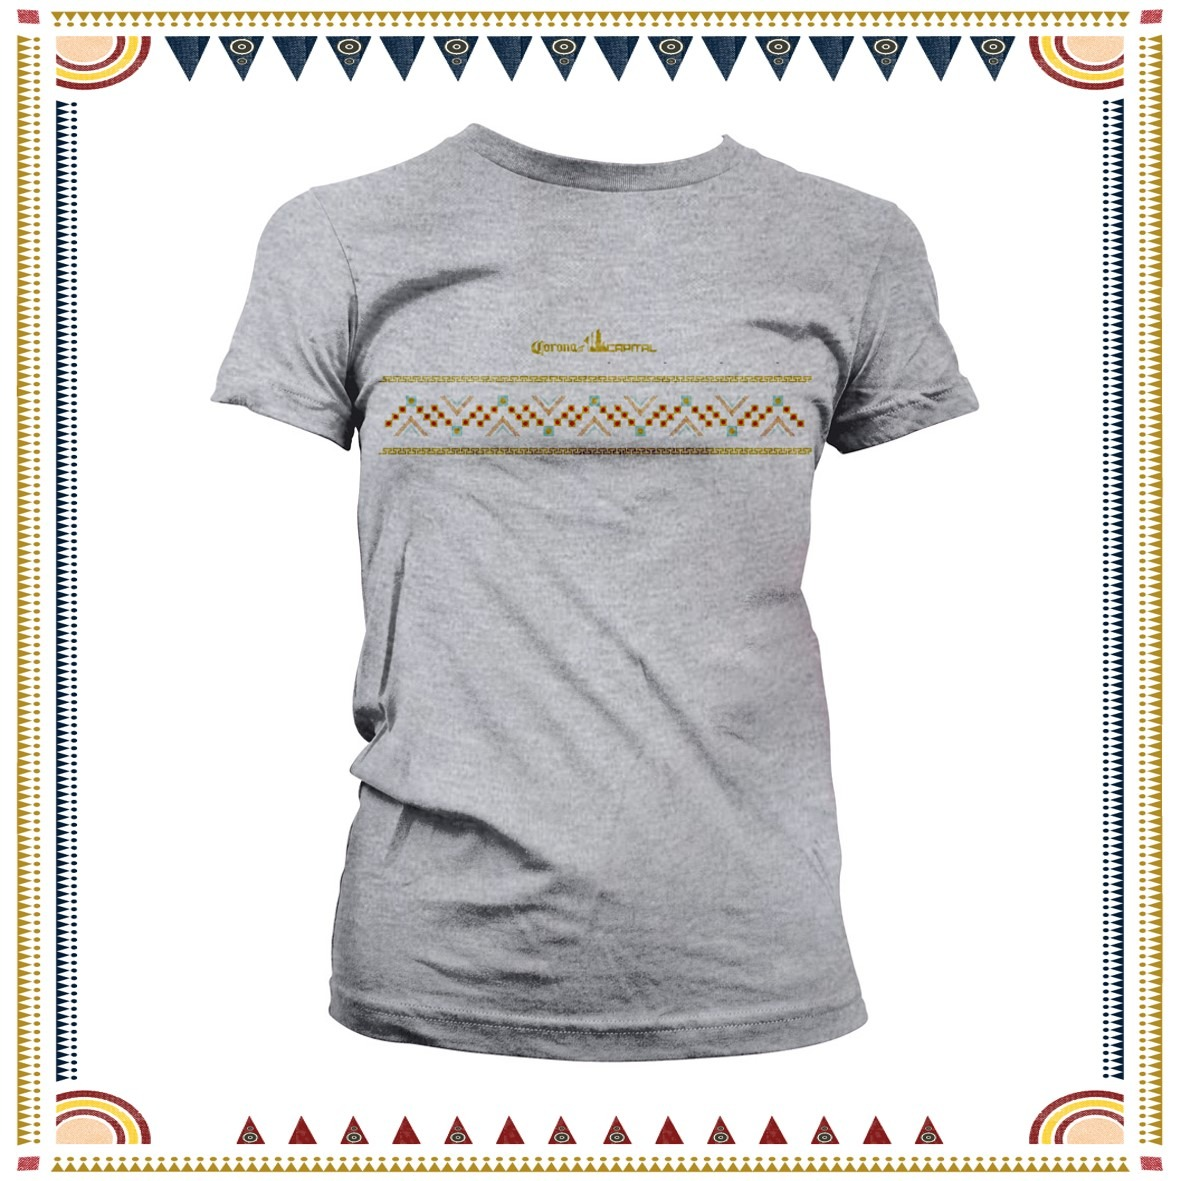 PLAYERA ECO-FRIENDLY GRIS PARA MUJER #CC2018